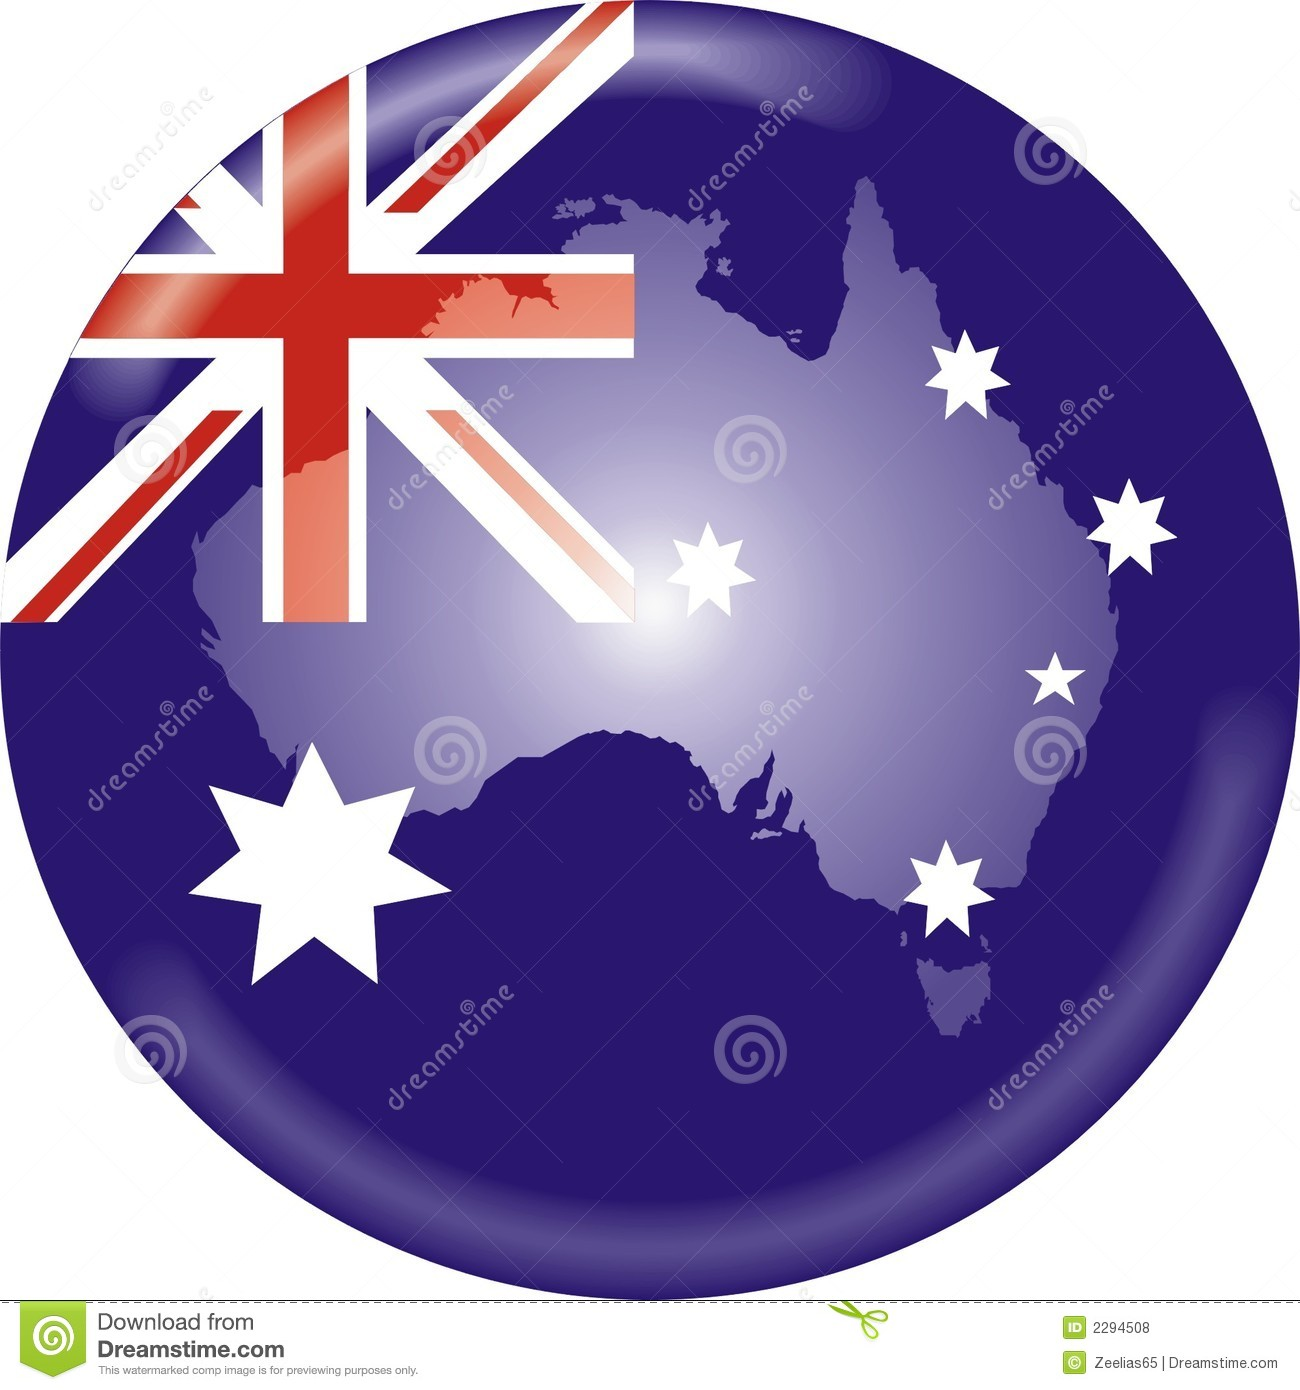 Australia Map With Flag.Australia Map And Flag Stock Vector Illustration Of Design 2294508